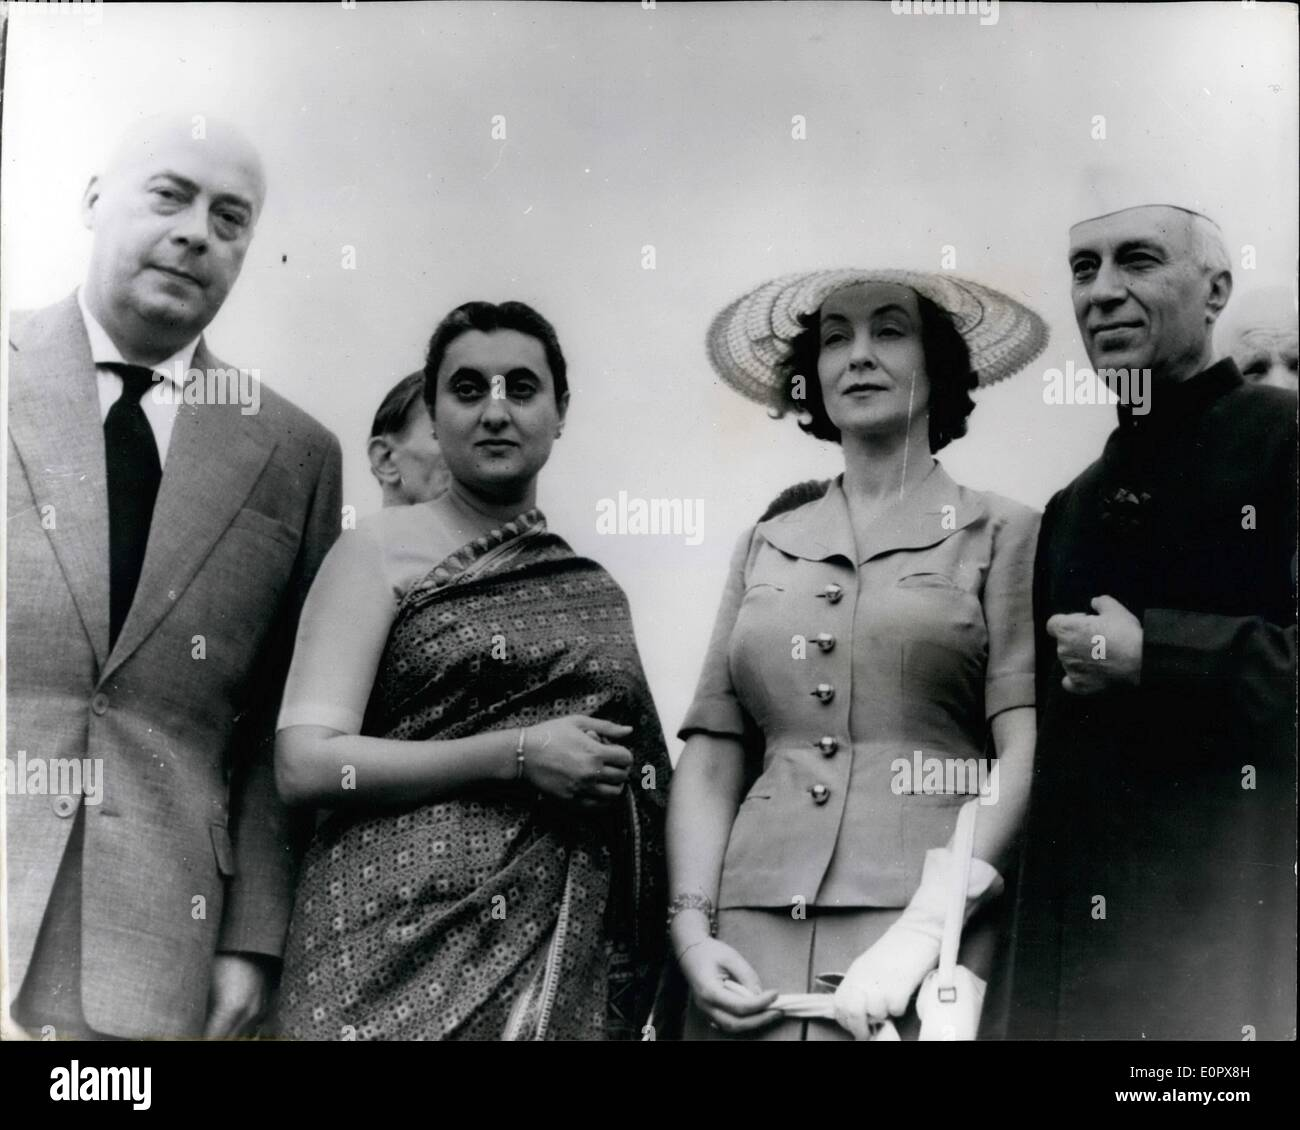 Apr. 04, 1957 - Polish Prime Minister In India: Poland's Prime Minister Joseph Cryankiewicz (left) with on right Indian Prime Minister Mr. Nehru-and to the left-Mrs. Gandhi who acted as hostess -during the official visit to New Delhi. The Polish leader and Mr. Nehru signed a cultural agreement on behalf of their Governments - during the visit. Mrs. Indira Gandhi Becomes India's First Woman Prime Minister. - Stock Image